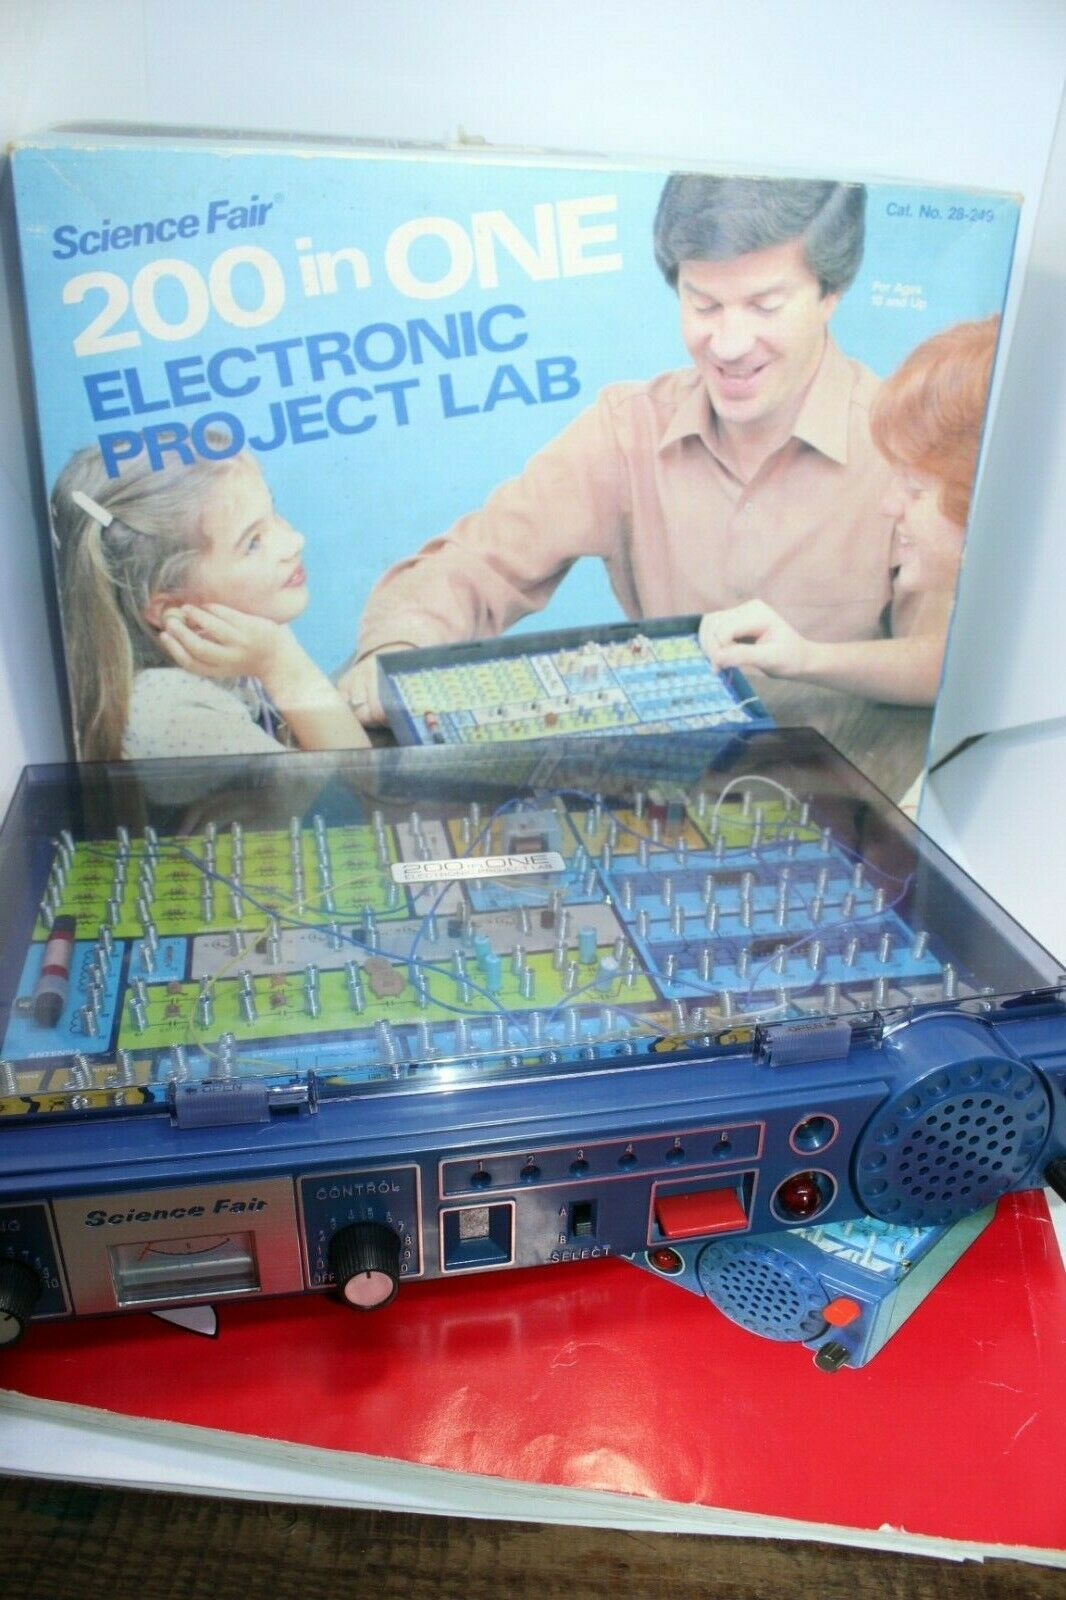 Vintage Science Fair 200 in One Electronic Project Lab electronics game learning